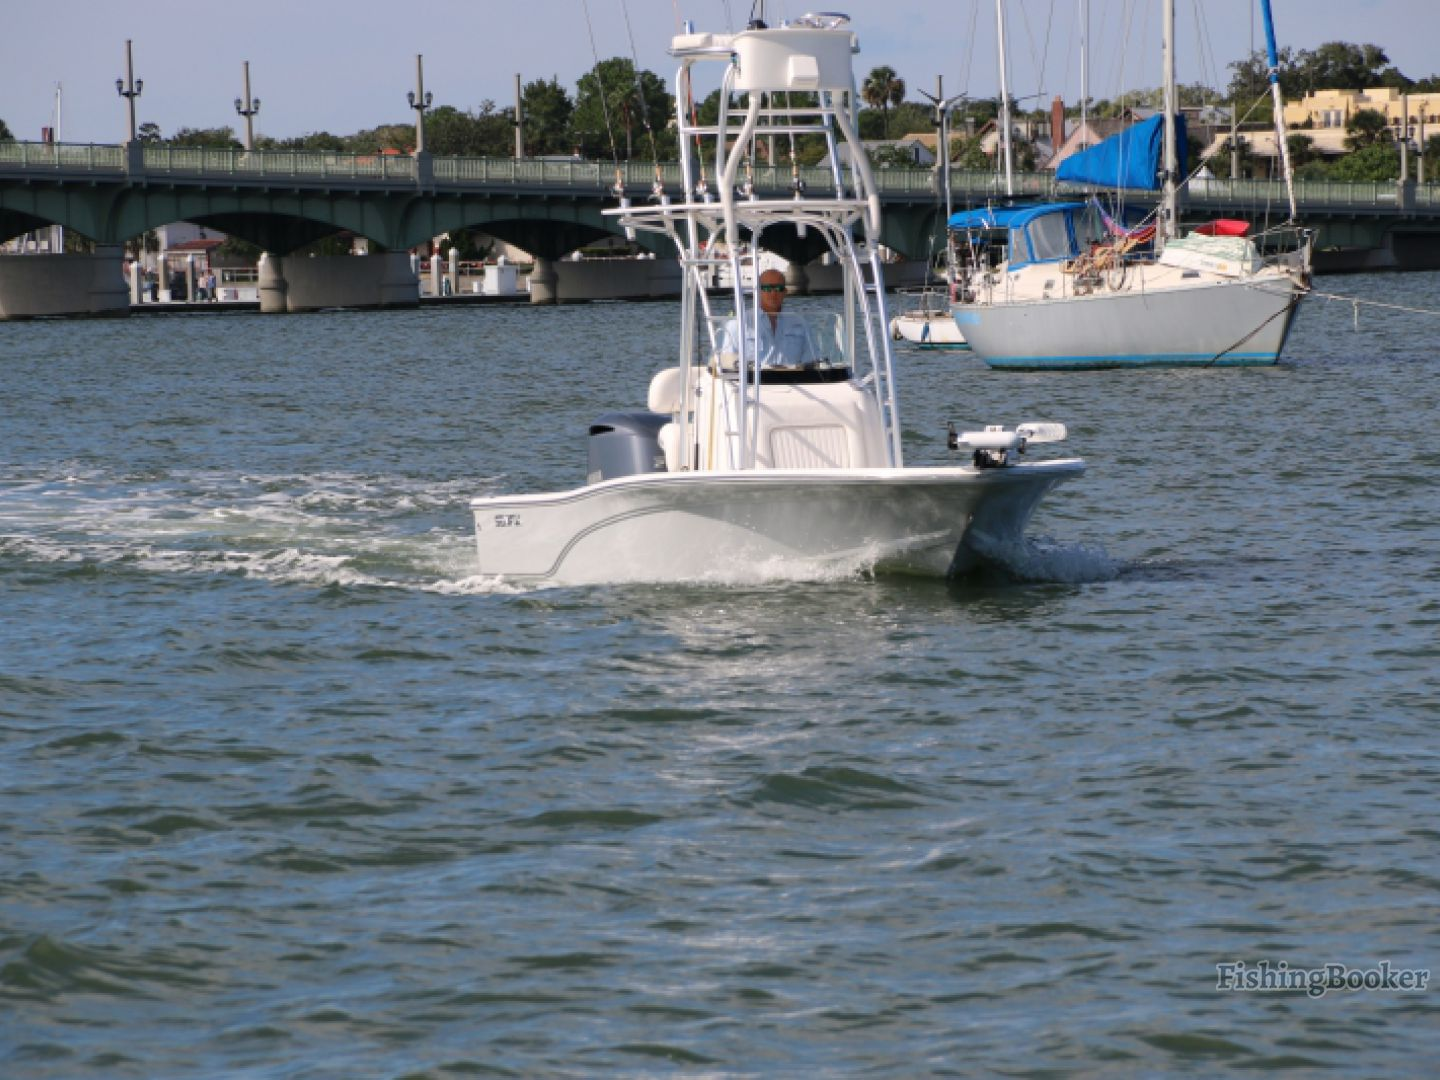 First city fishing charters st augustine florida for Fishing charters st augustine